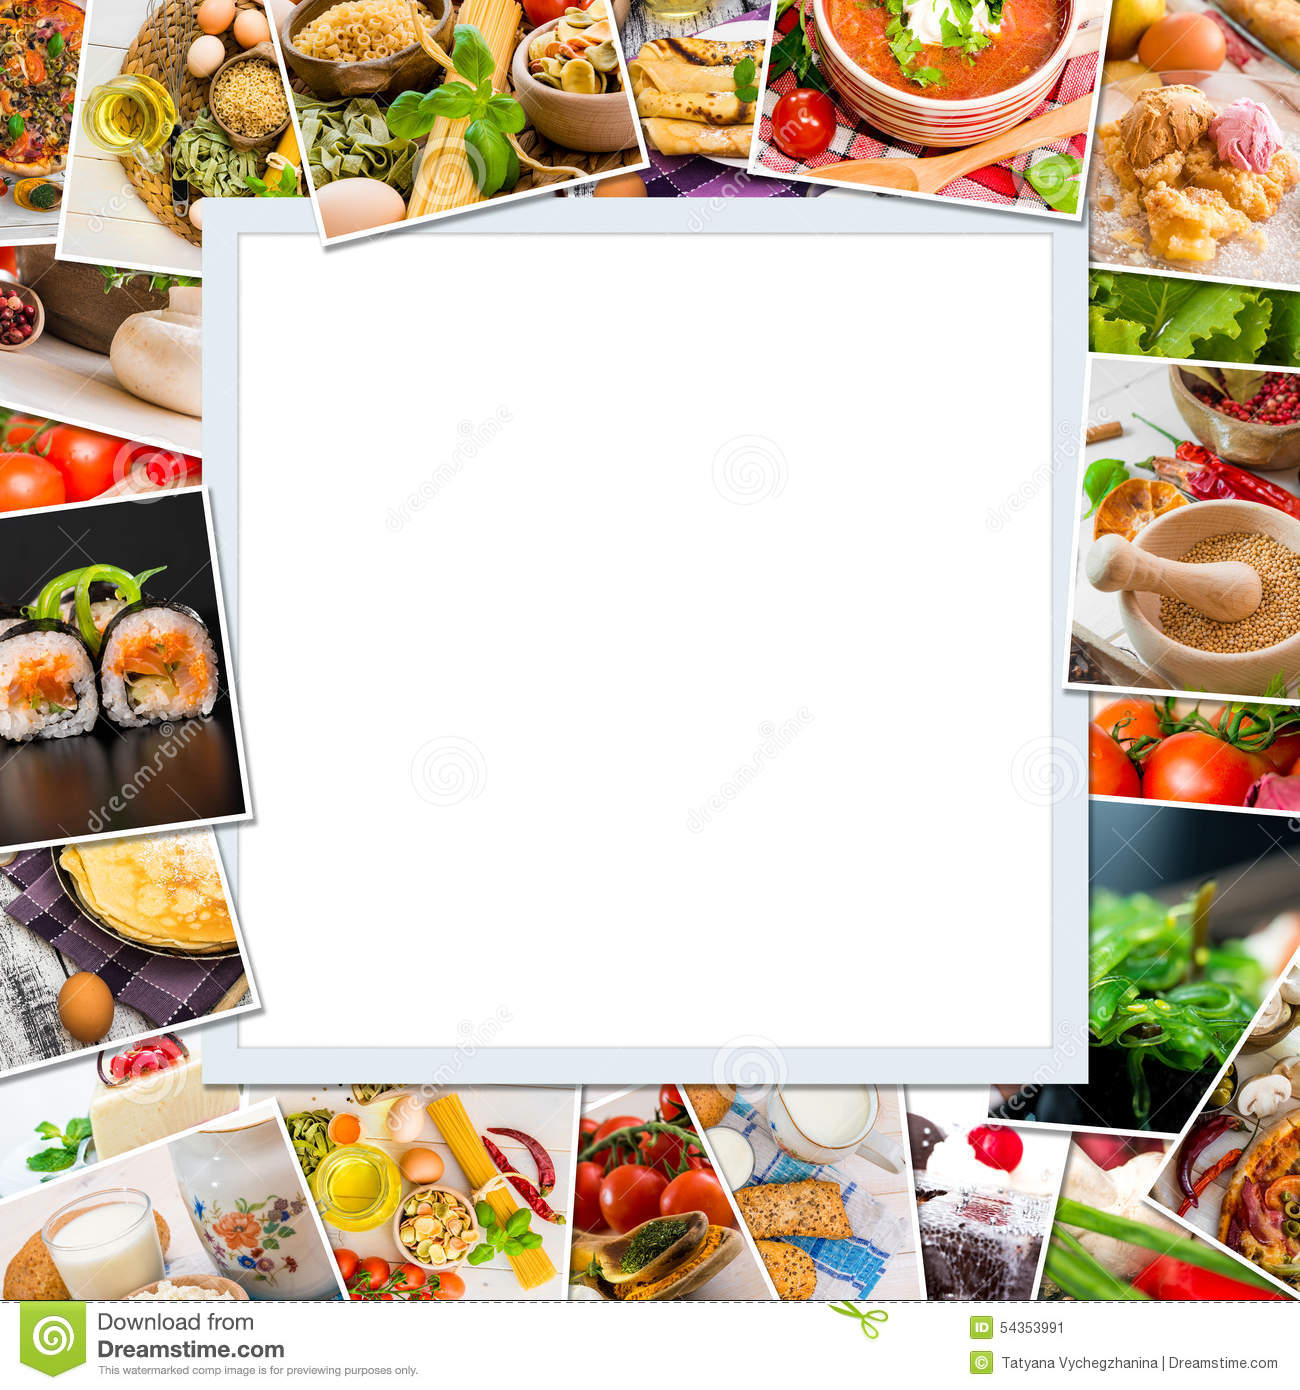 Frame Photos Of Food Stock Image Image Of Eggs Desert